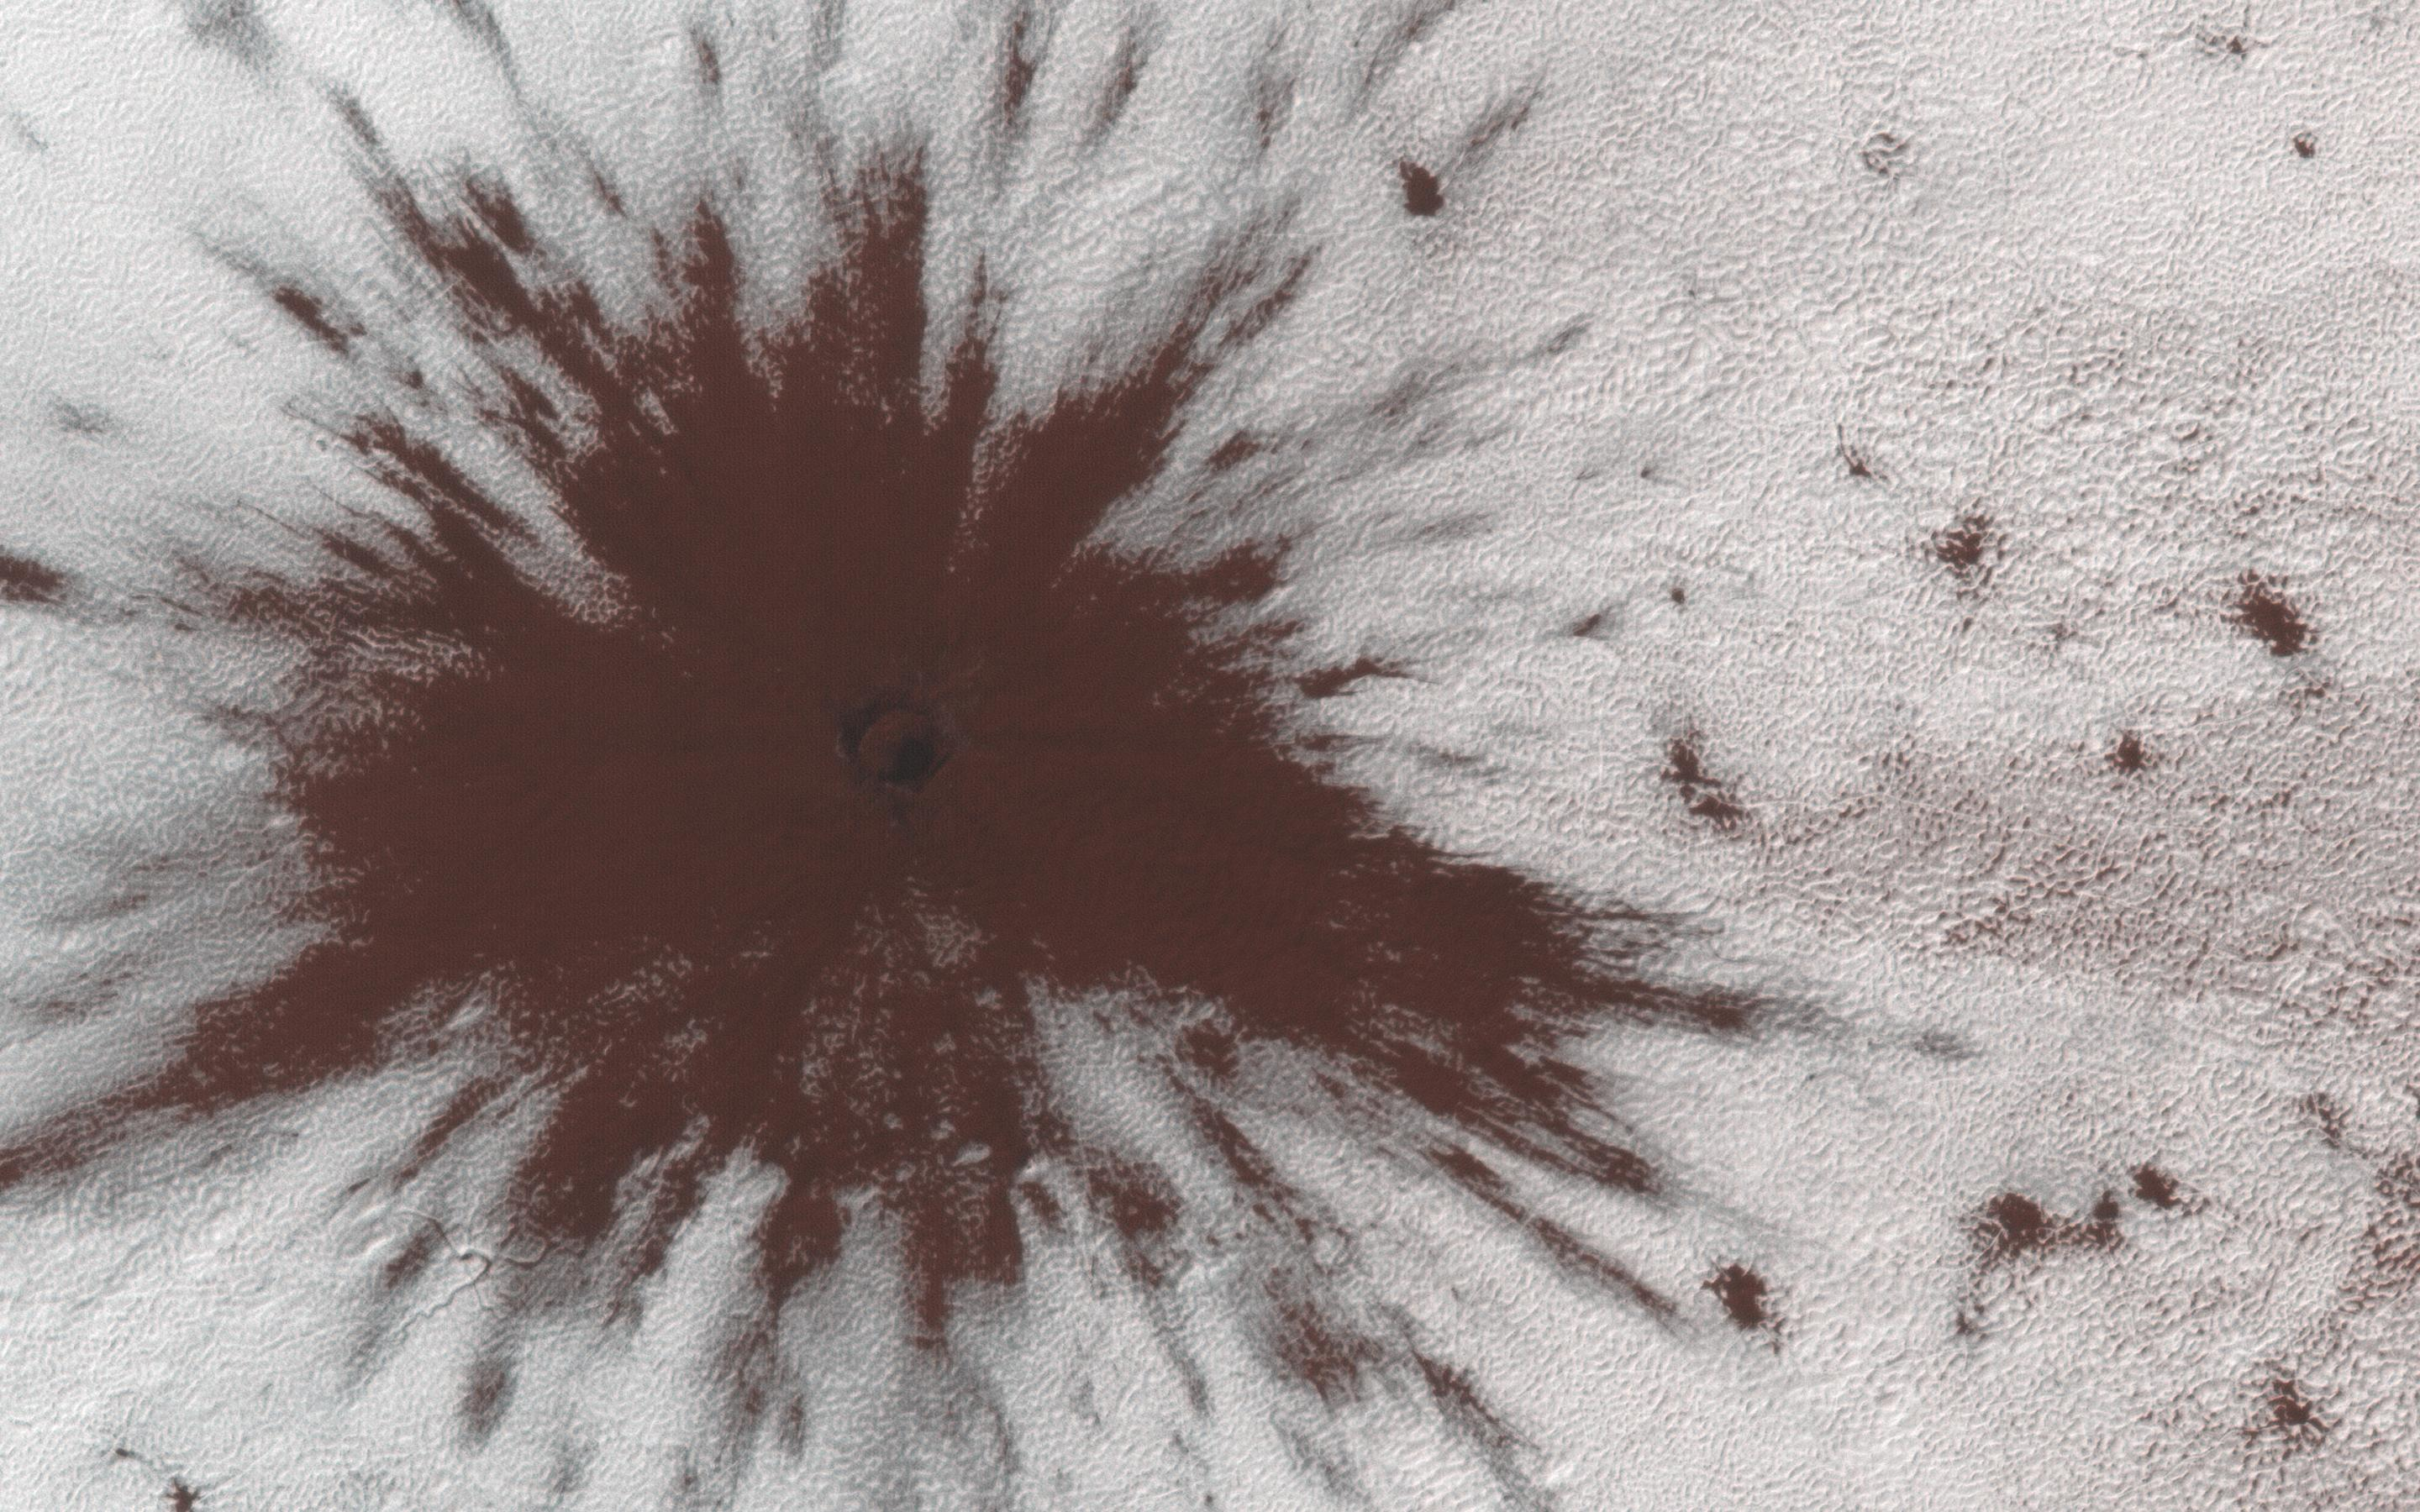 This image acquired on October 5, 2018 by NASAs Mars Reconnaissance Orbiter, shows a new impact crater that formed between July and September 2018.